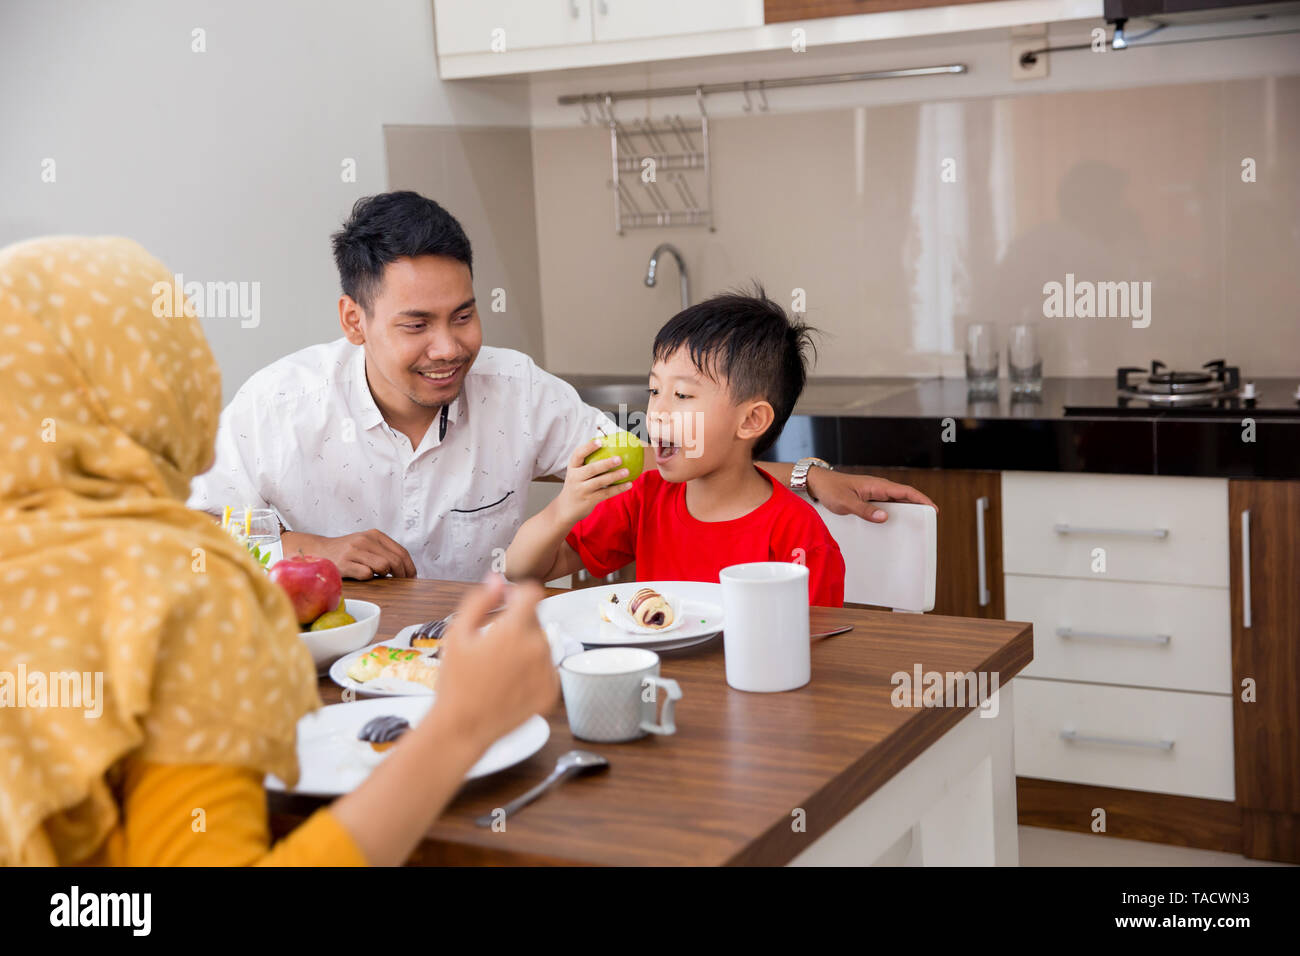 portrait of a boy eating apple in breakfast with parent - Stock Image